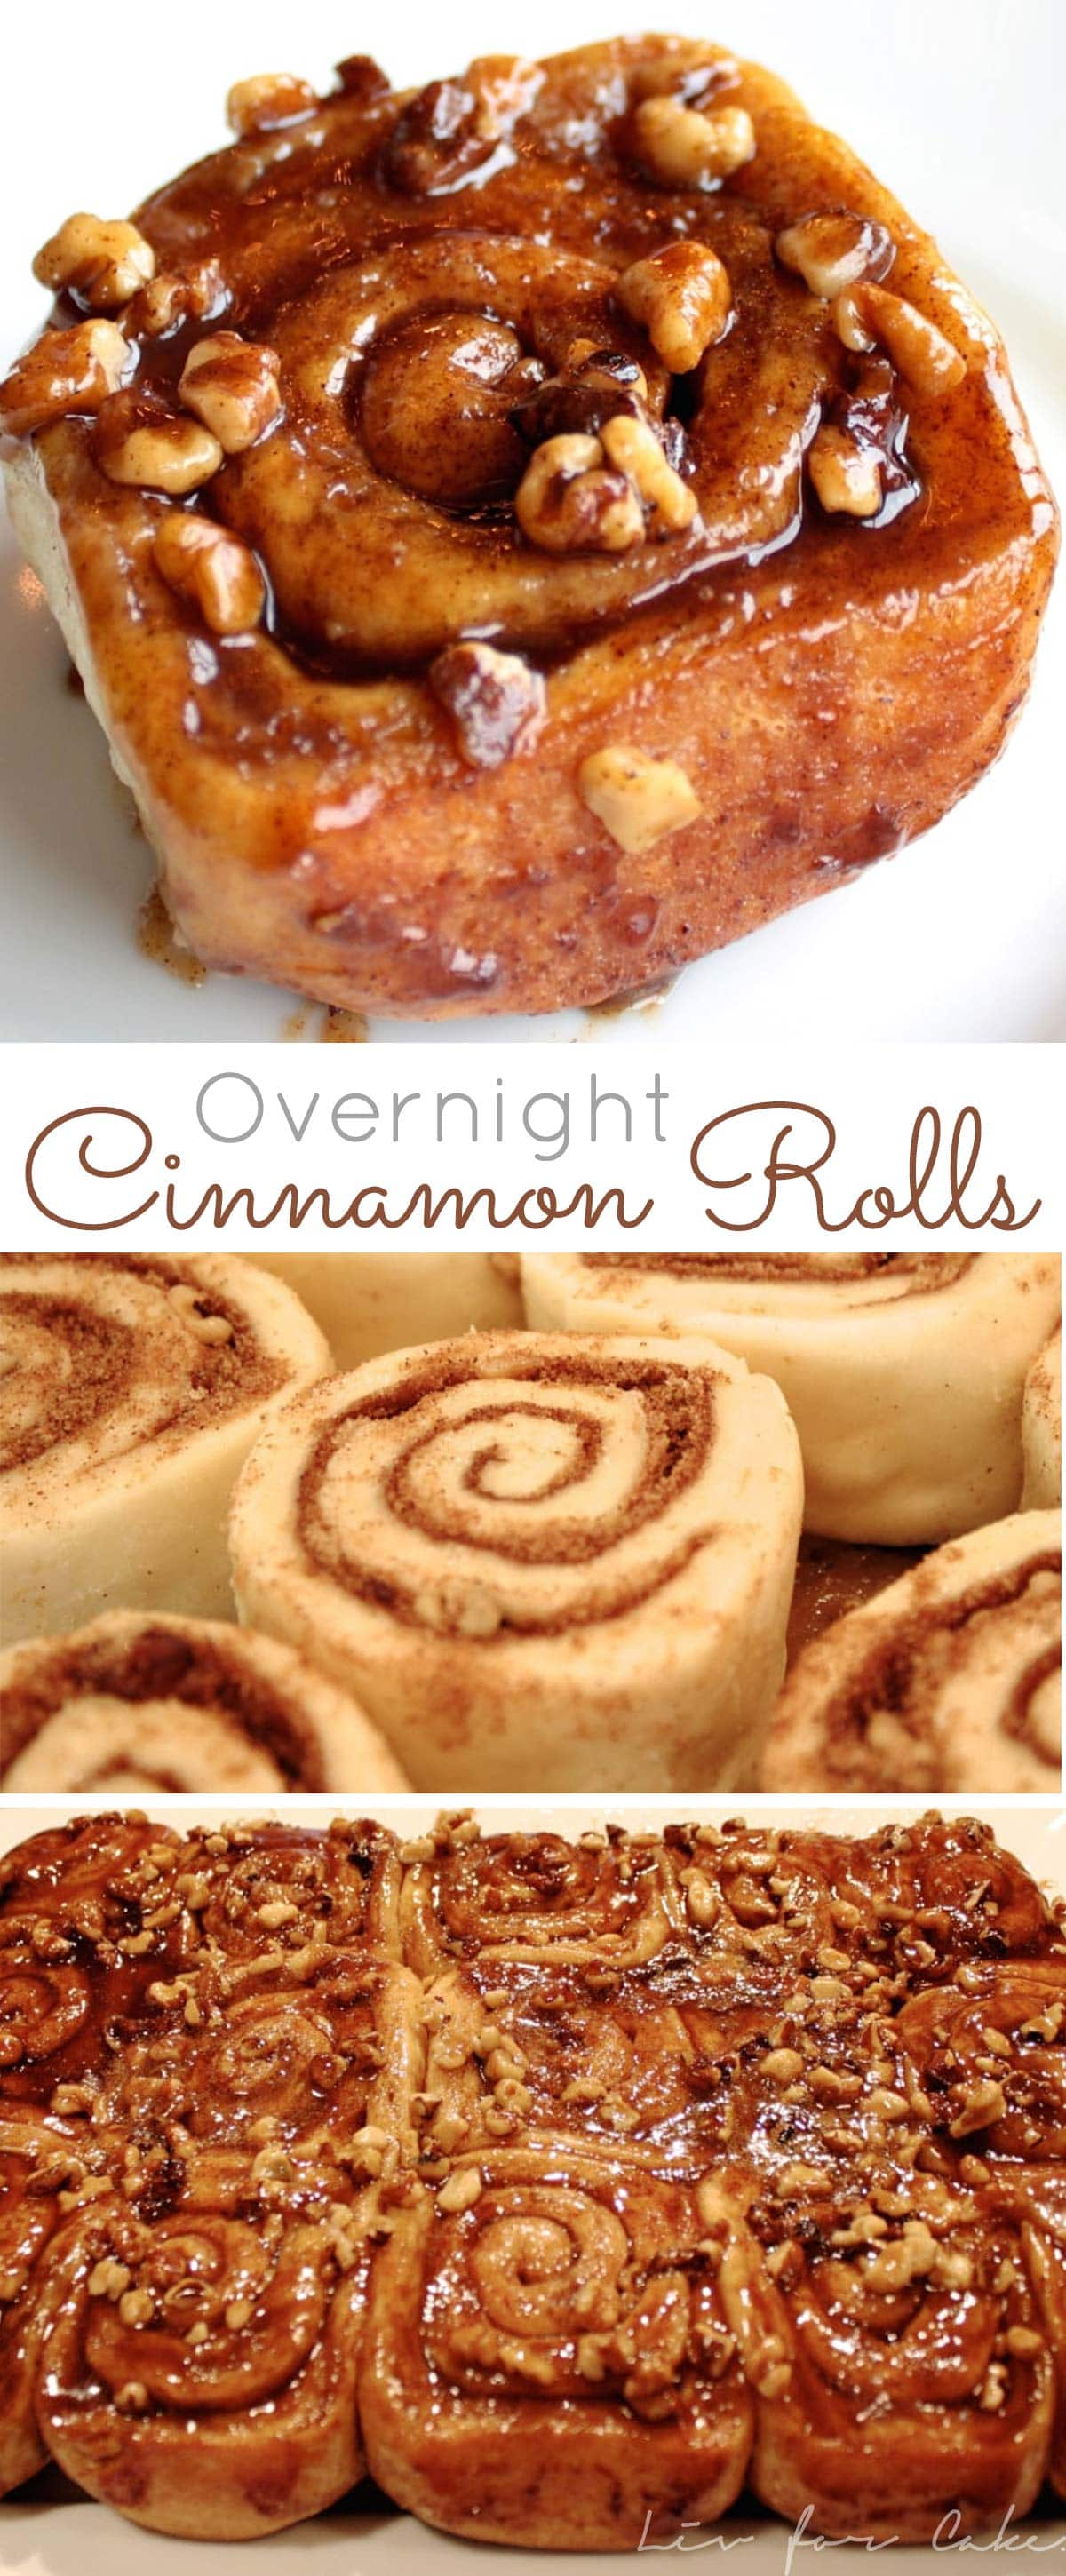 This easy overnight cinnamon rolls recipe is a huge time saver! Make them in advance and pop them in the oven on Christmas morning. | livforcake.com